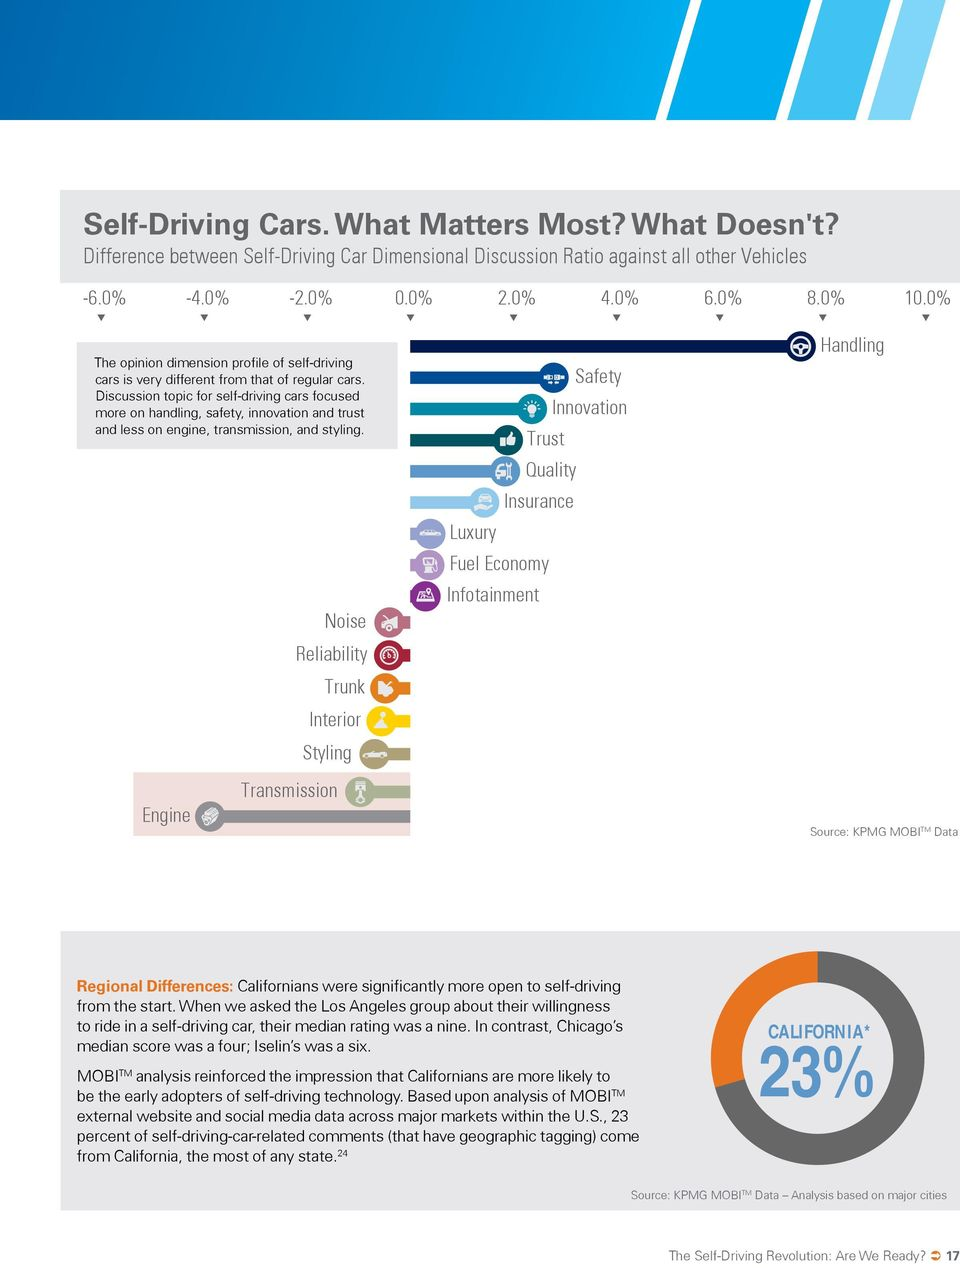 Discussion topic for self-driving cars focused more on handling, safety, innovation and trust and less on engine, transmission, and styling.